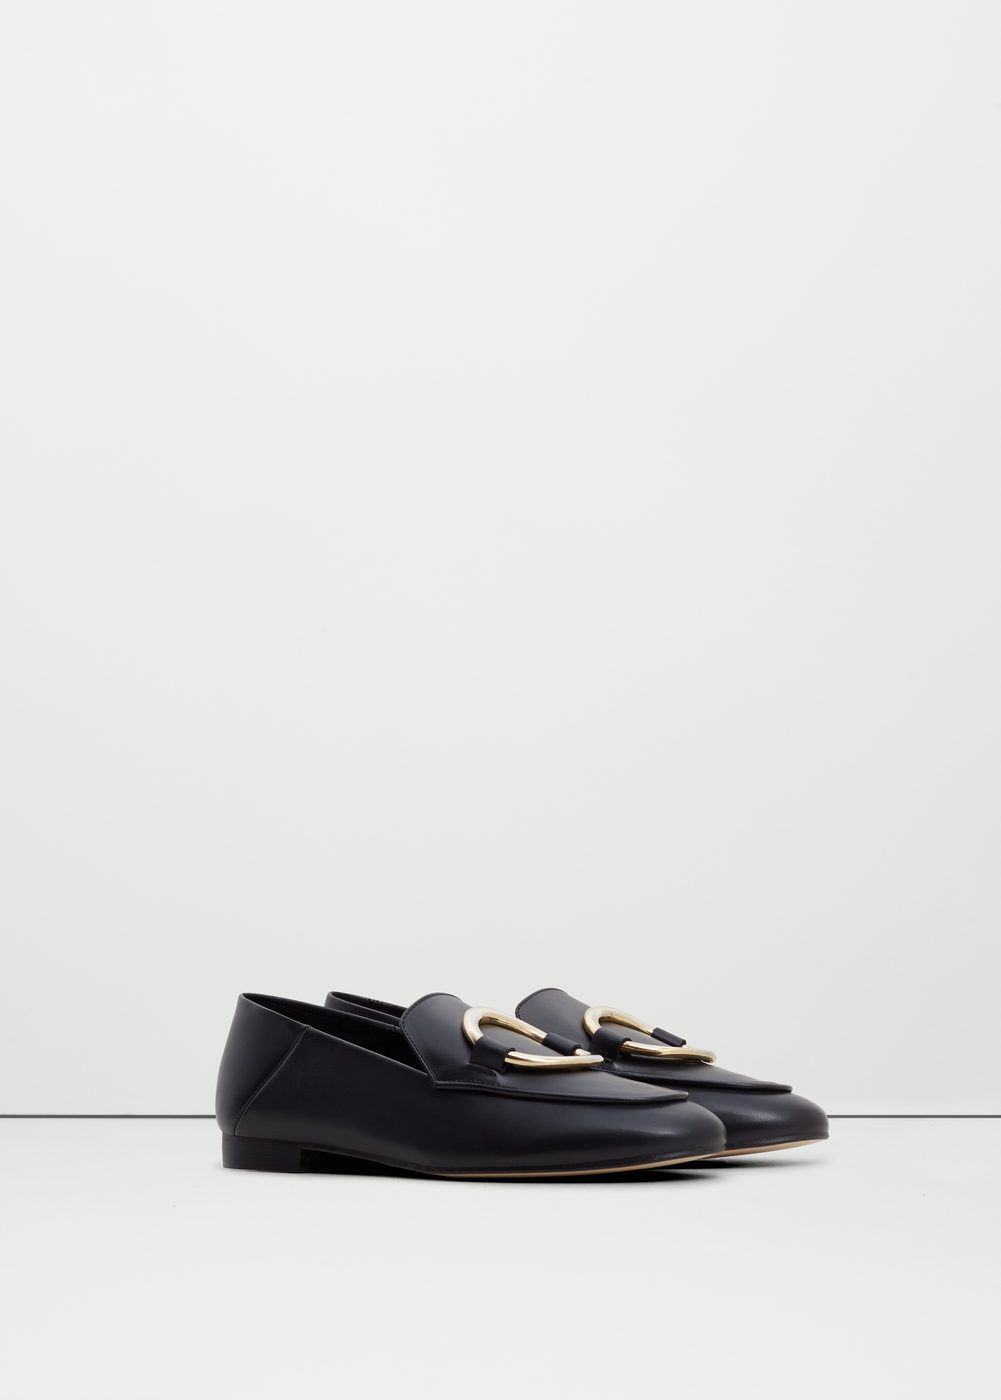 Leather United Appliqué Qdxhcbtsr Kingdom Womanmango Loafers PZOkuXi